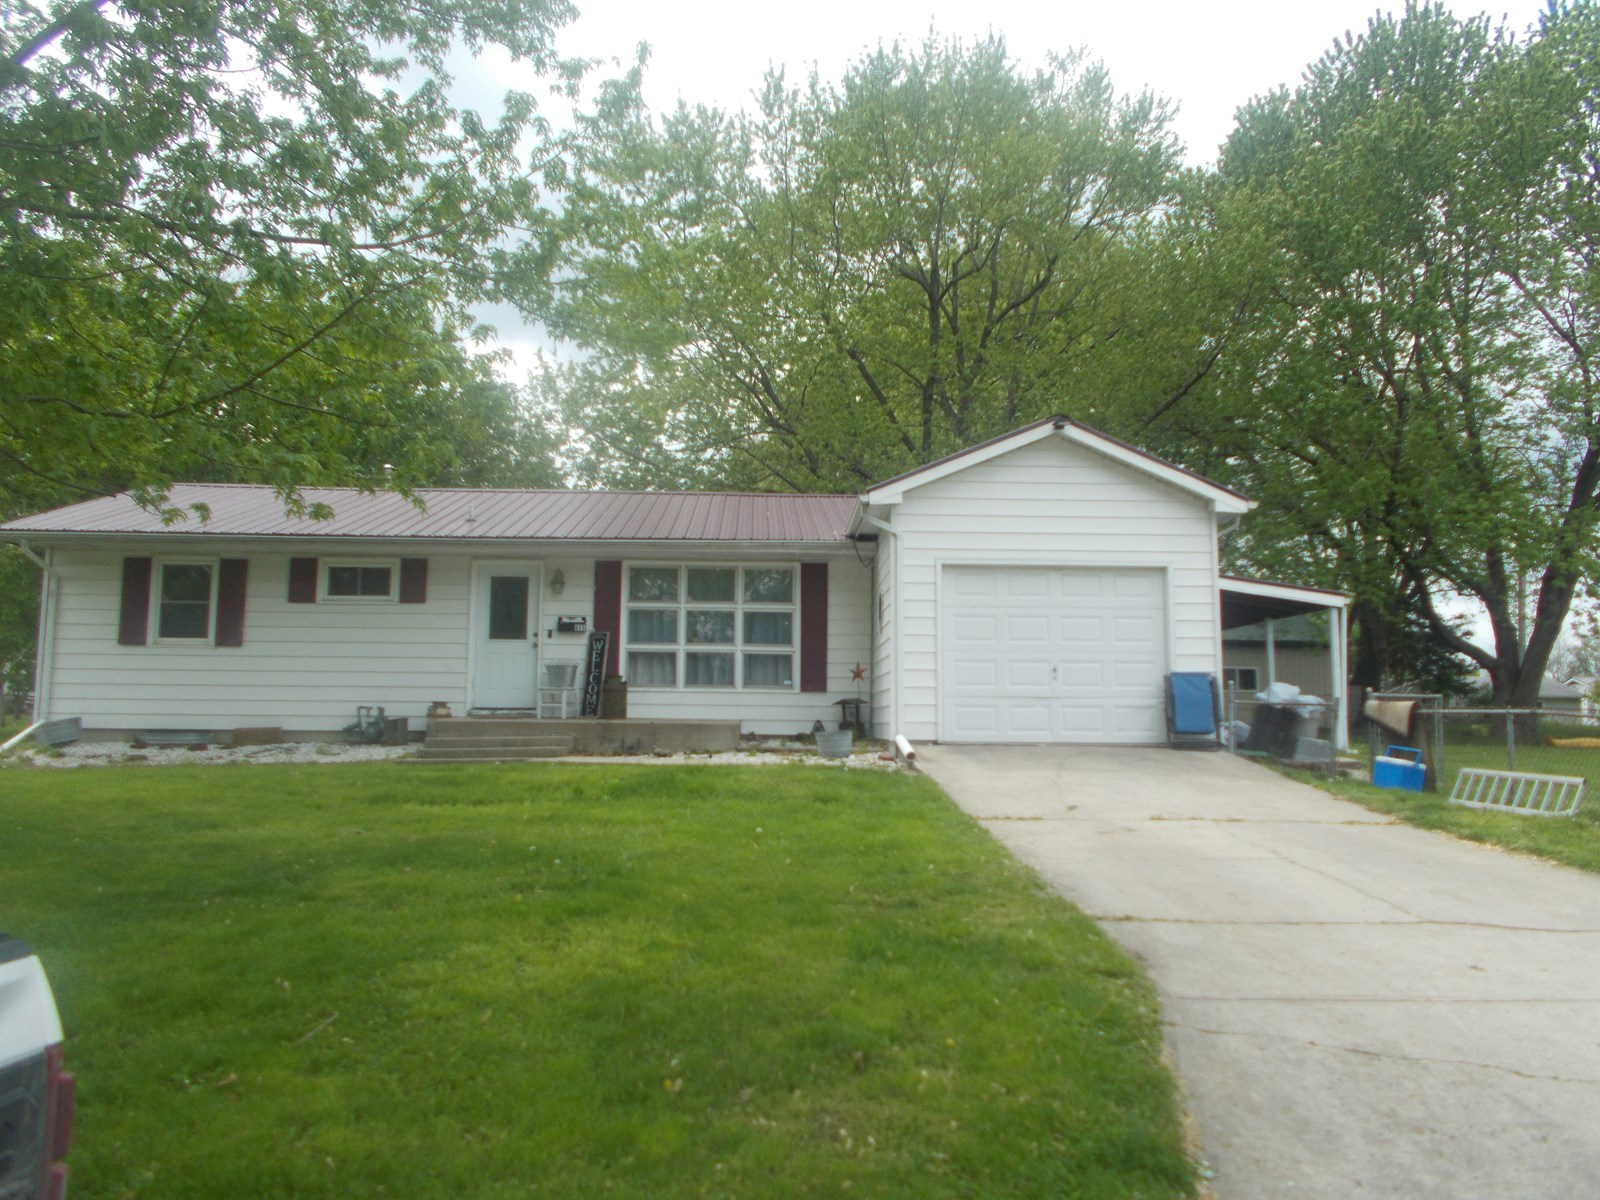 For Sale Ranch Home in Cameron MO